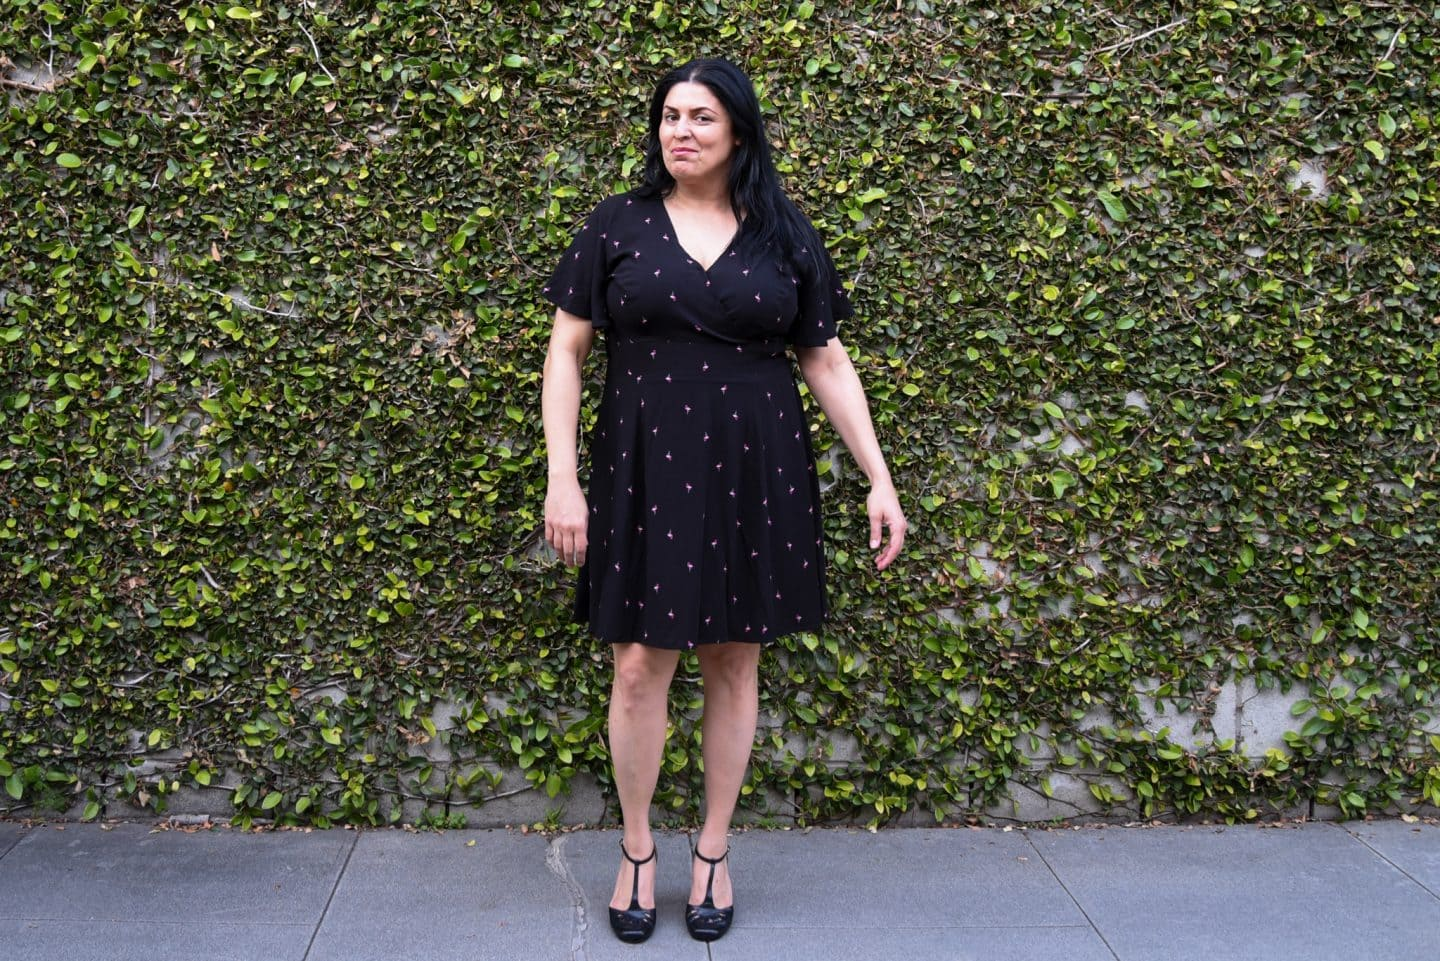 Image of a woman with long black hair wearing a Magnolia dress in black with tiny pink flamingos scattered like polka dots standing in front of a wall covered by ivy.